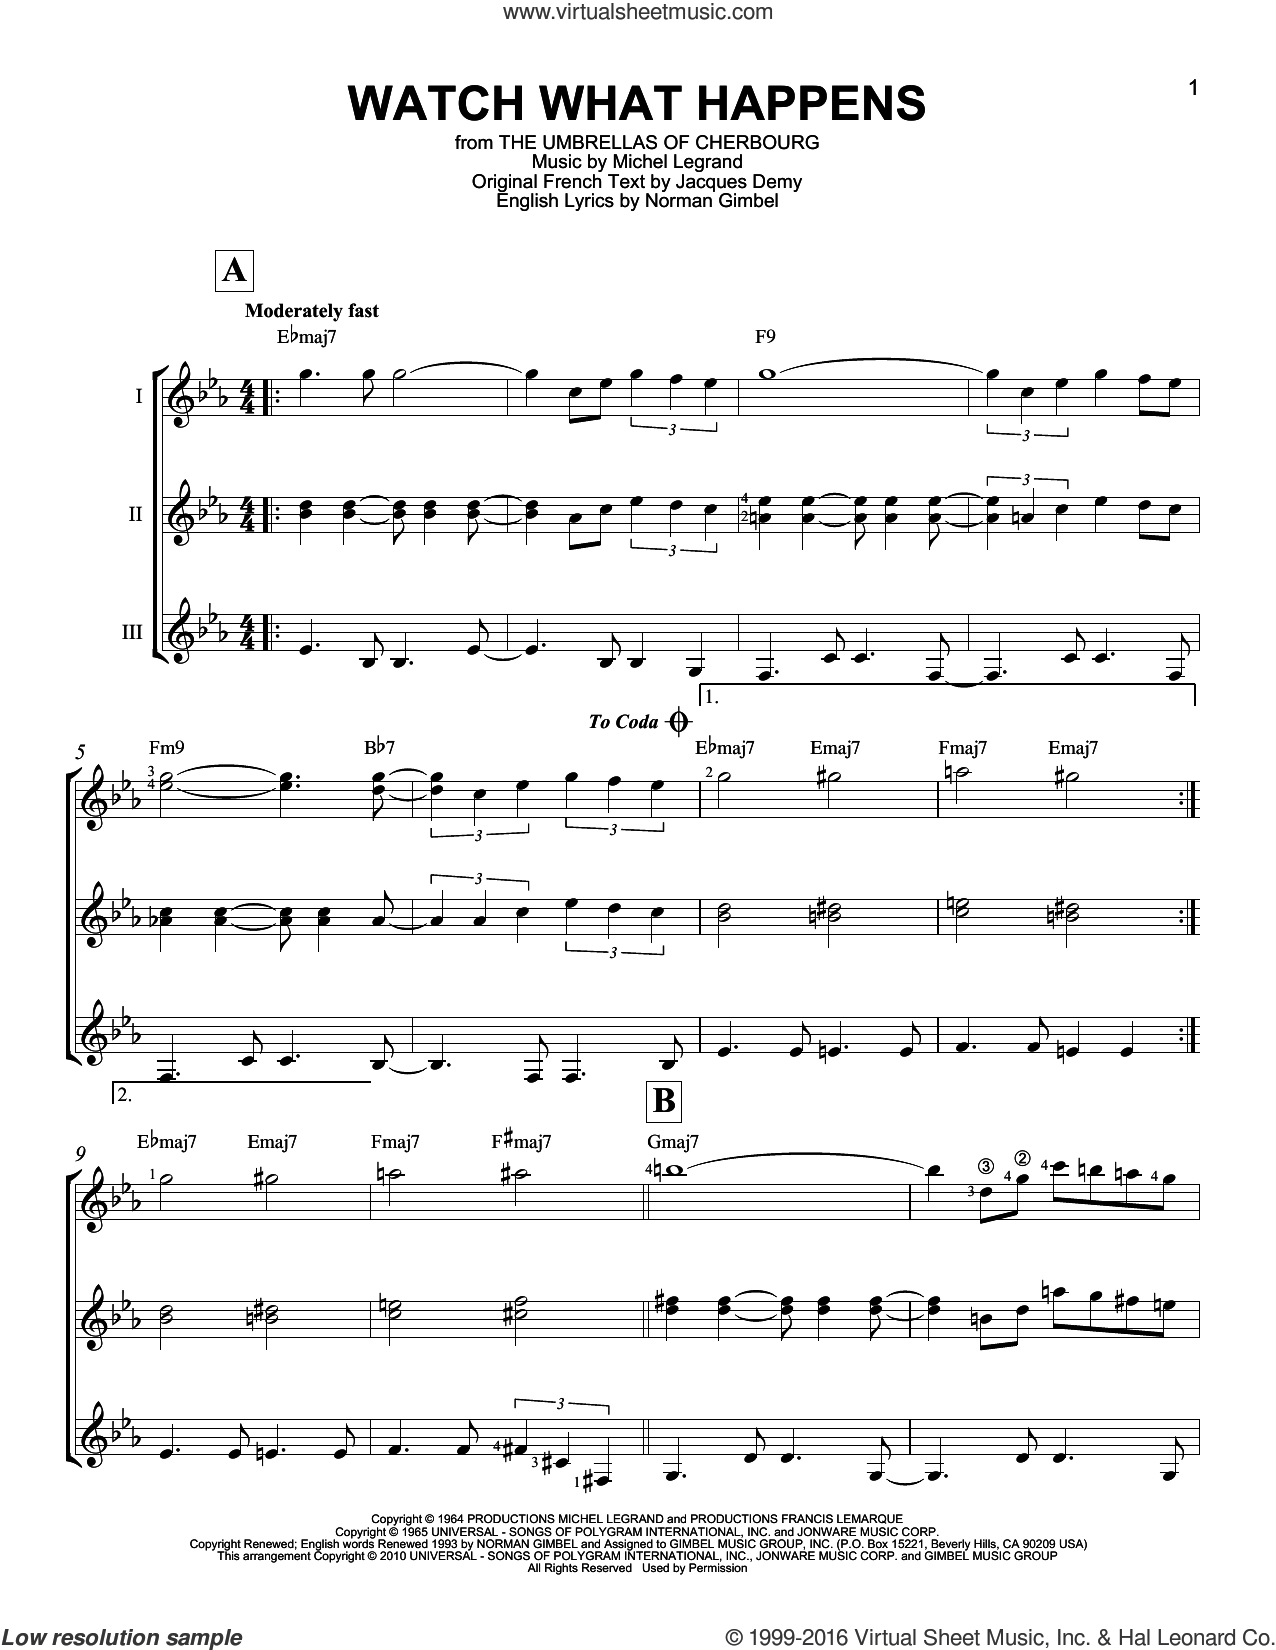 Watch What Happens sheet music for guitar ensemble by Michel Legrand and Norman Gimbel, intermediate skill level